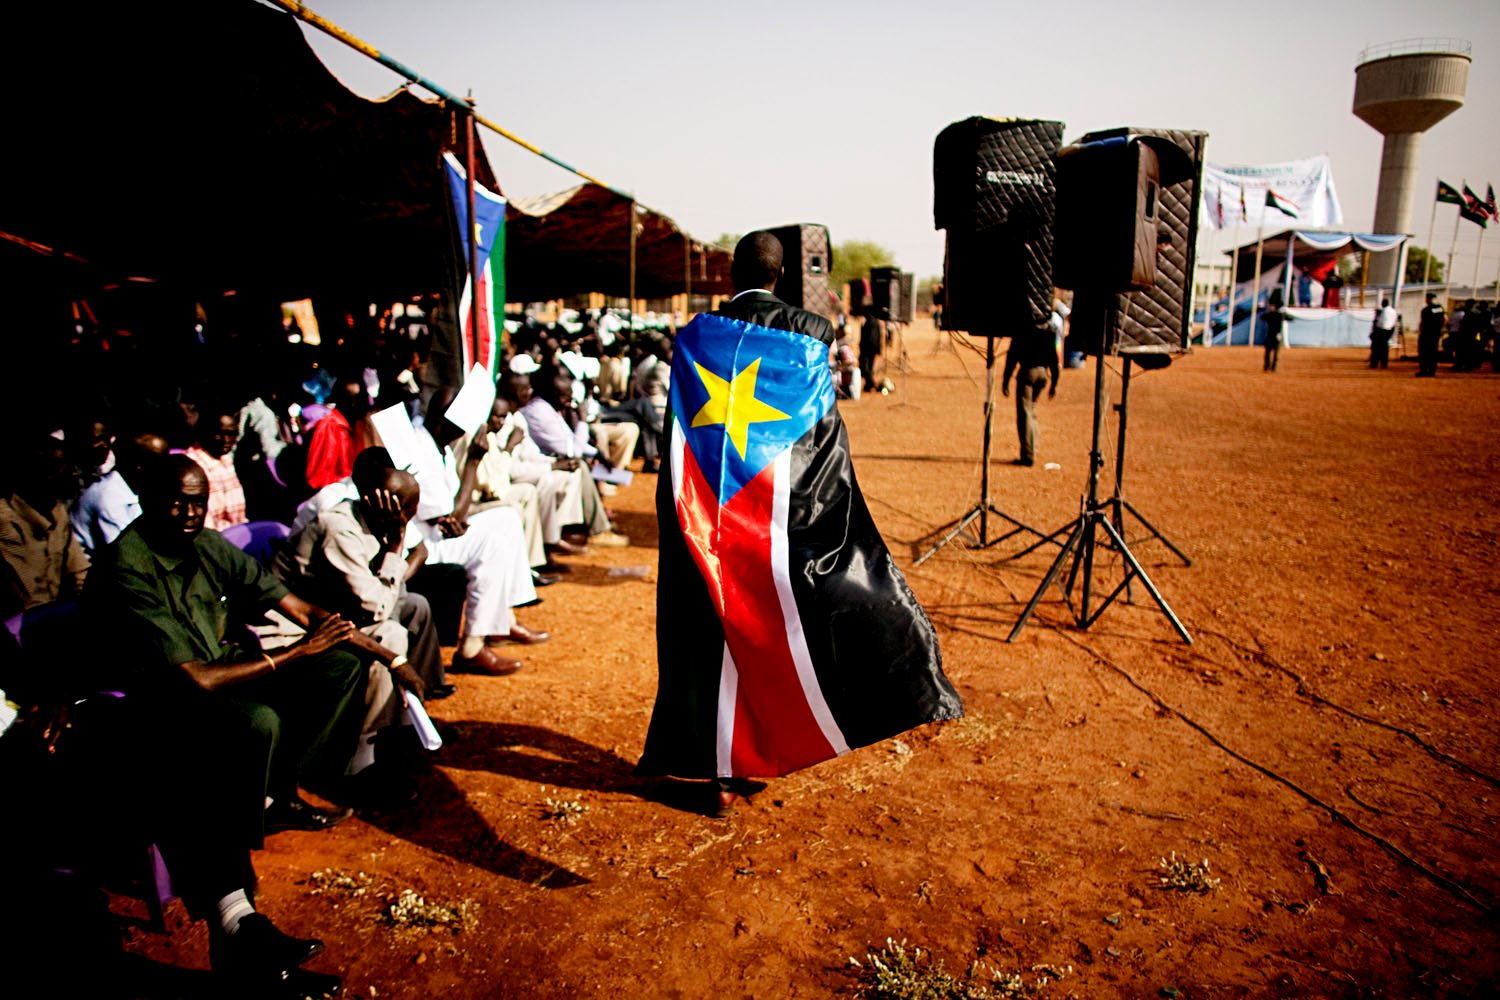 A man dons the flag of the Sudan People's Liberation Movement during a rally in Juba.